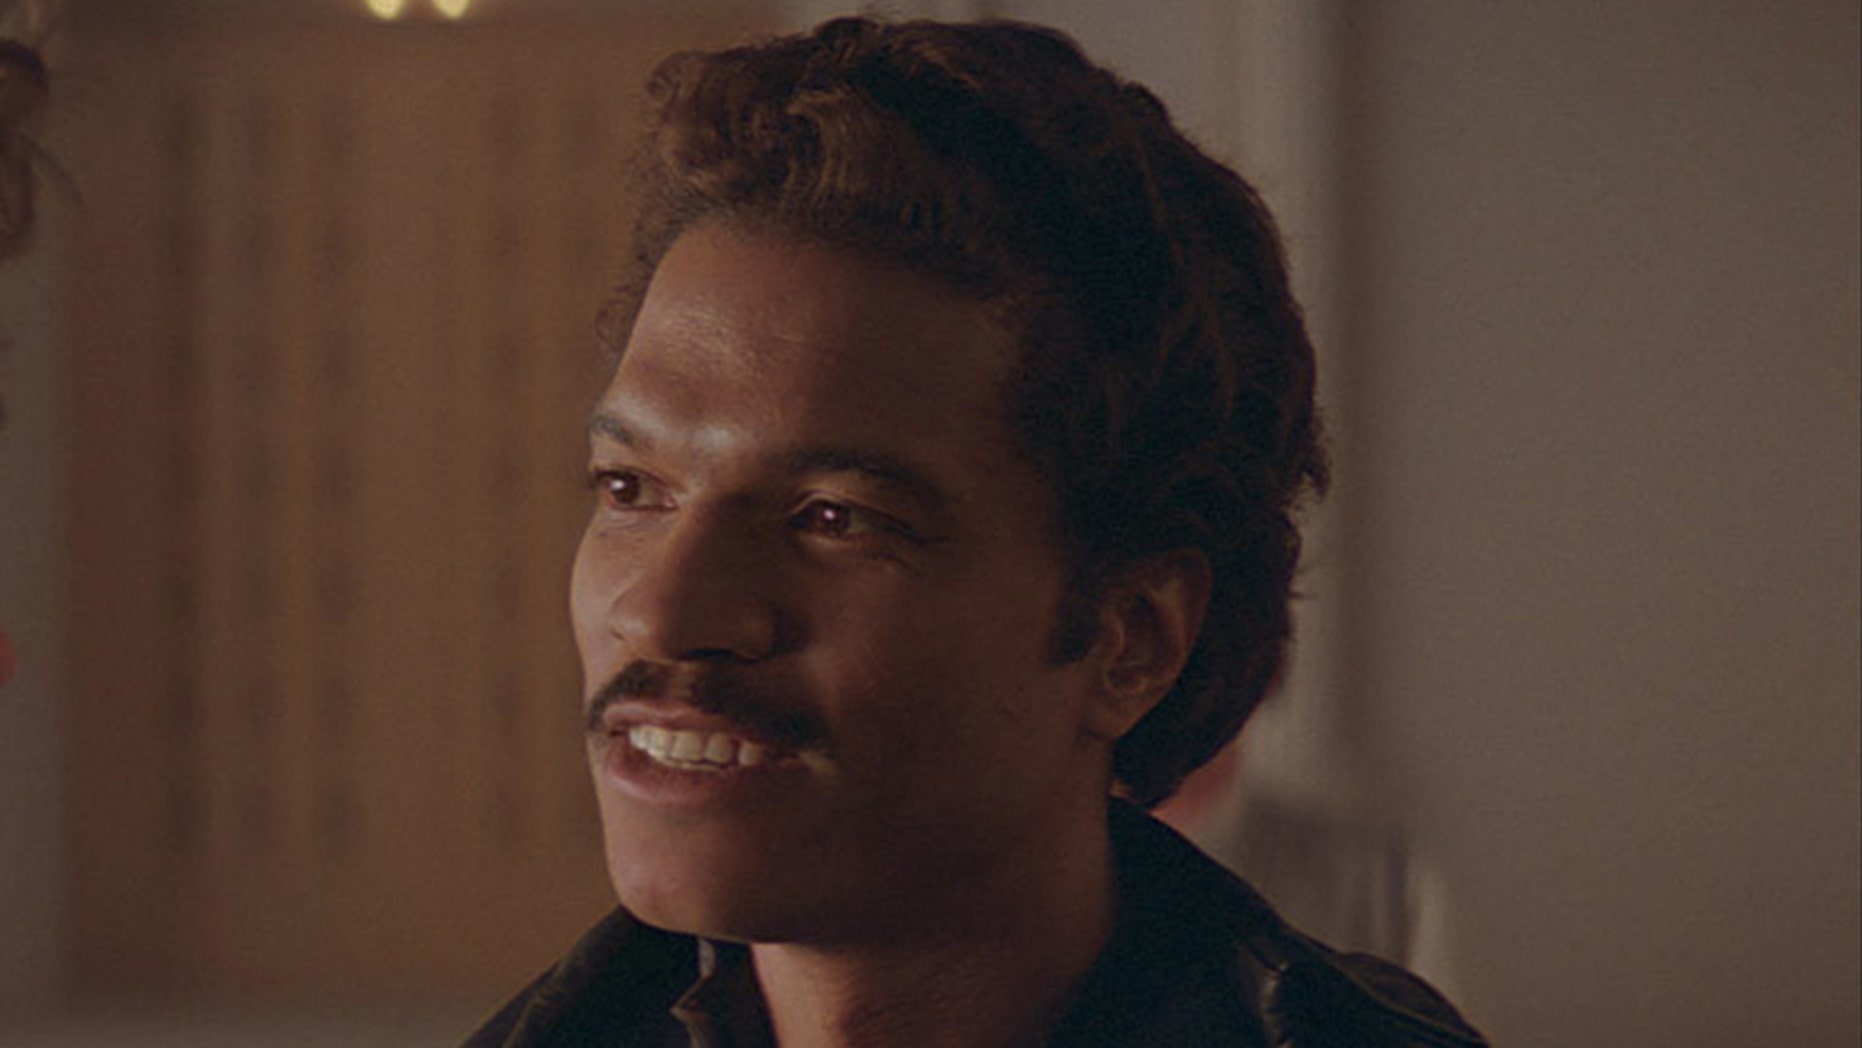 Actor Billy Dee Williams will reprise his role as Lando Calrissian in the new 'Star Wars' film.